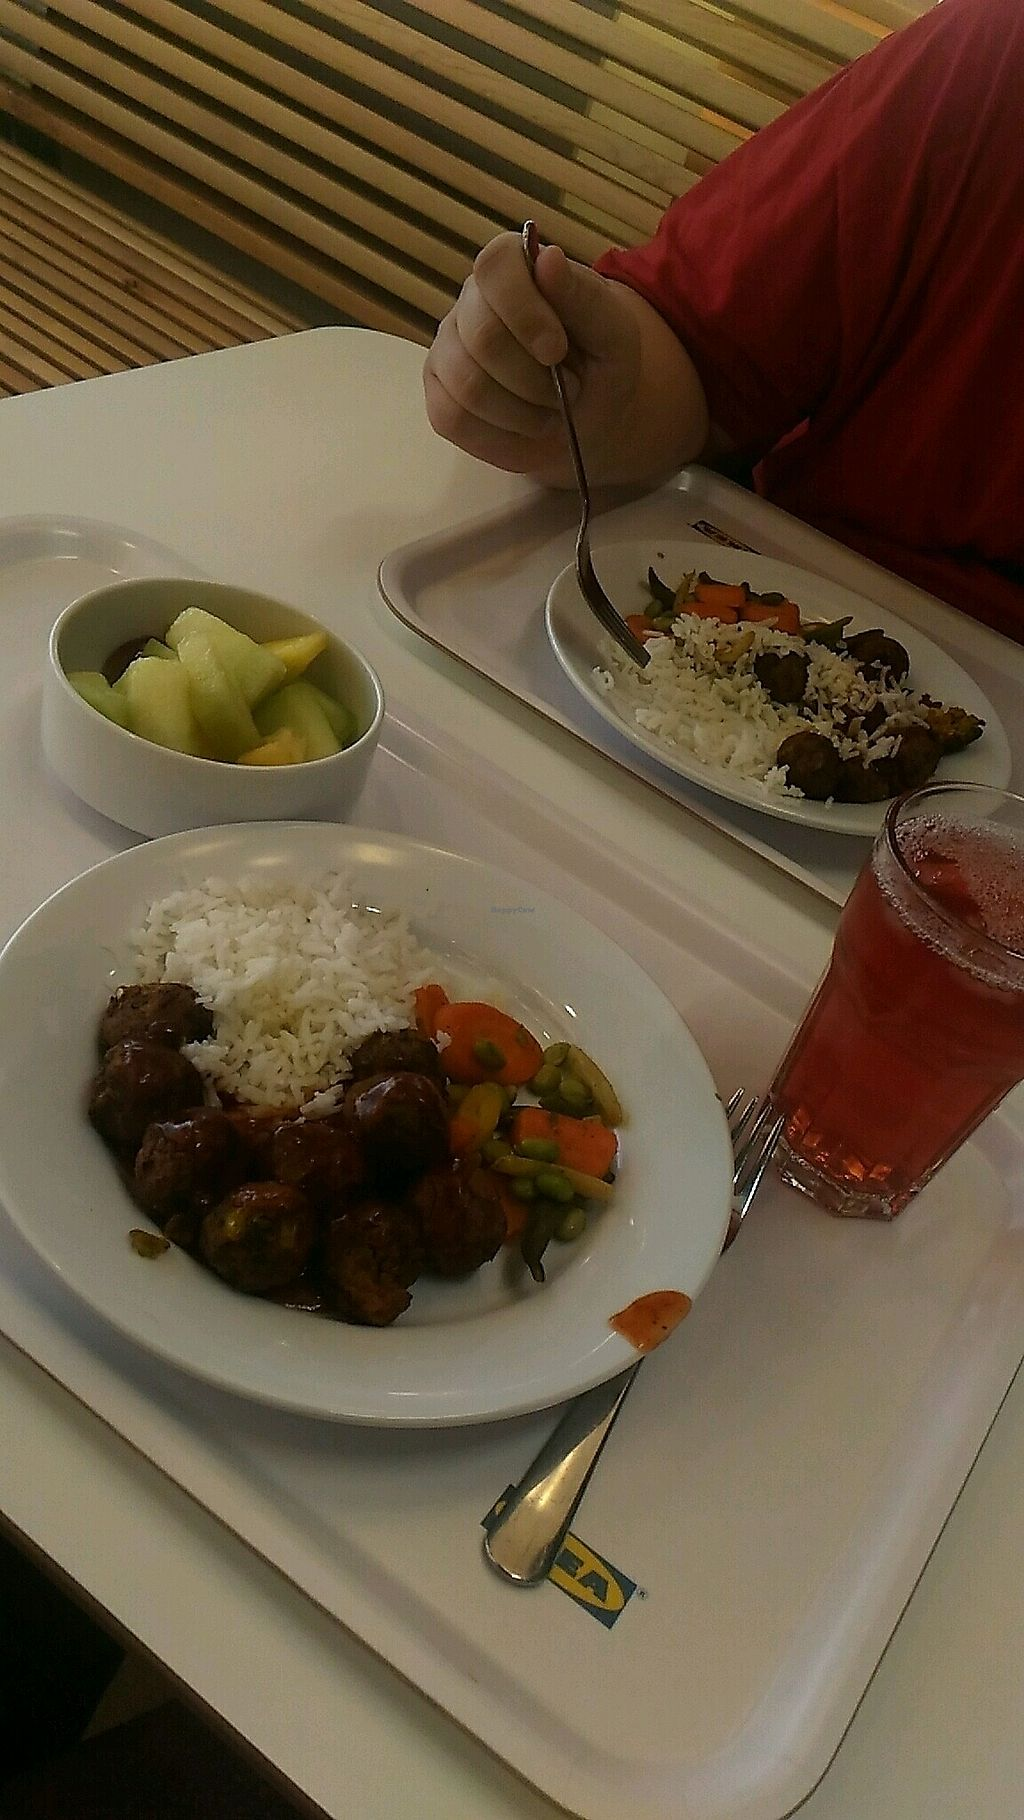 """Photo of IKEA  by <a href=""""/members/profile/QuothTheRaven"""">QuothTheRaven</a> <br/>veggie balls, lingonberry drink and friit salad <br/> November 27, 2017  - <a href='/contact/abuse/image/105992/329555'>Report</a>"""